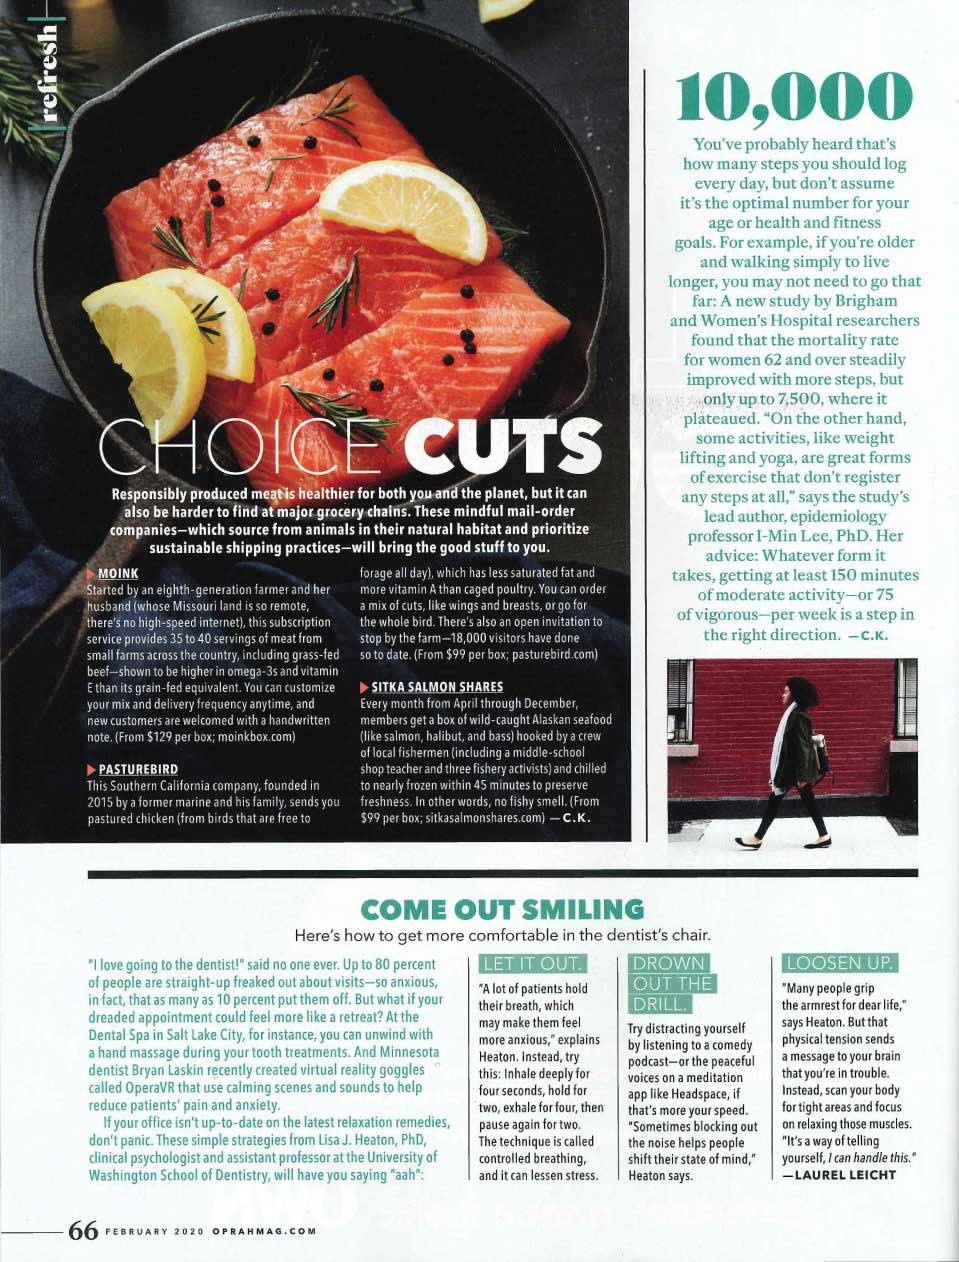 The Oprah Magazine mentions Sitka Salmon Shares